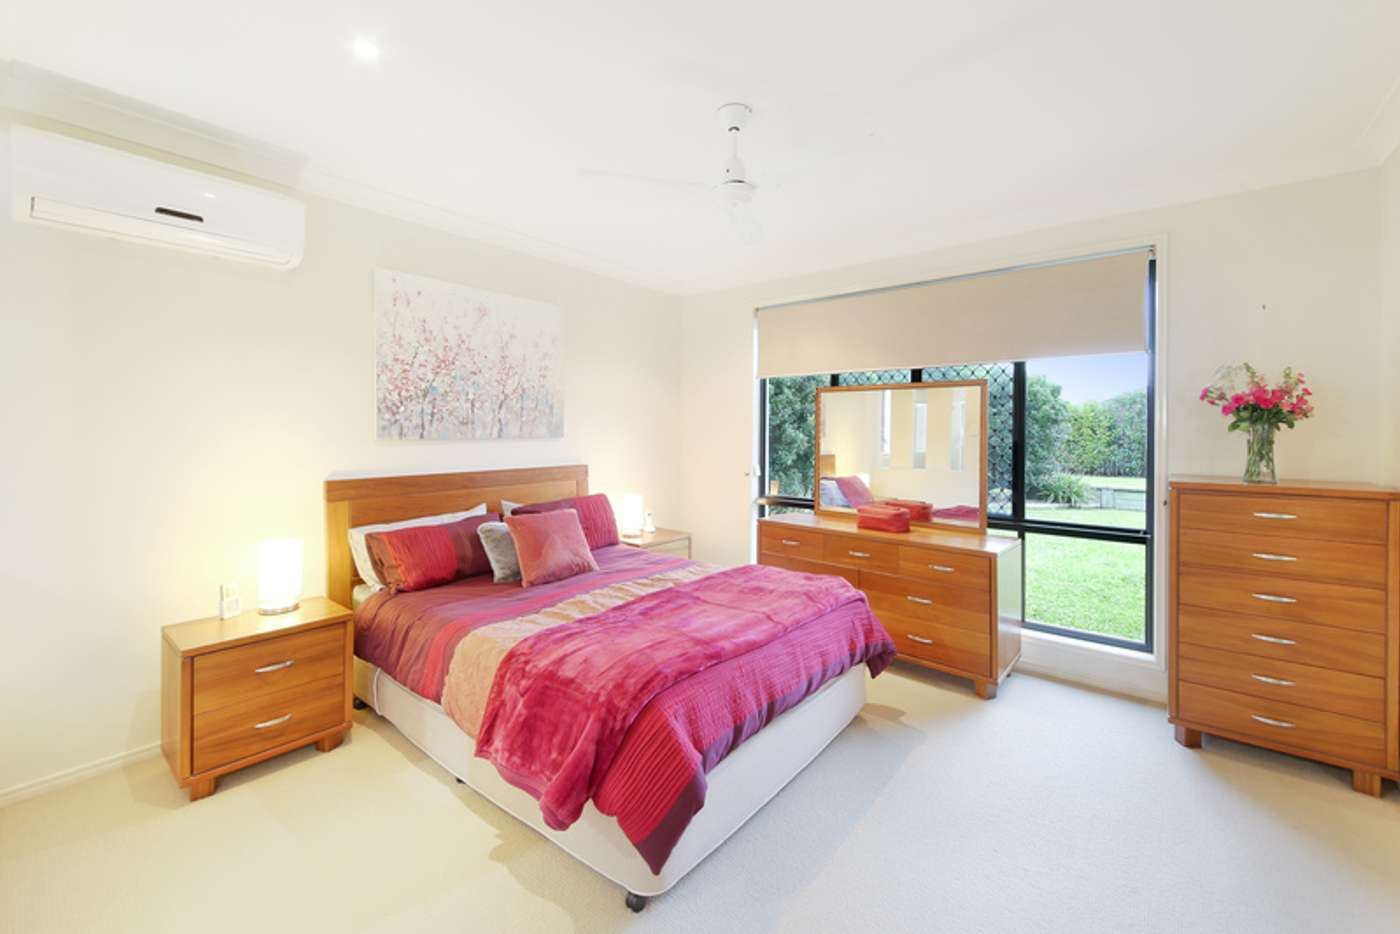 Seventh view of Homely house listing, 9 Tolman St, Sippy Downs QLD 4556